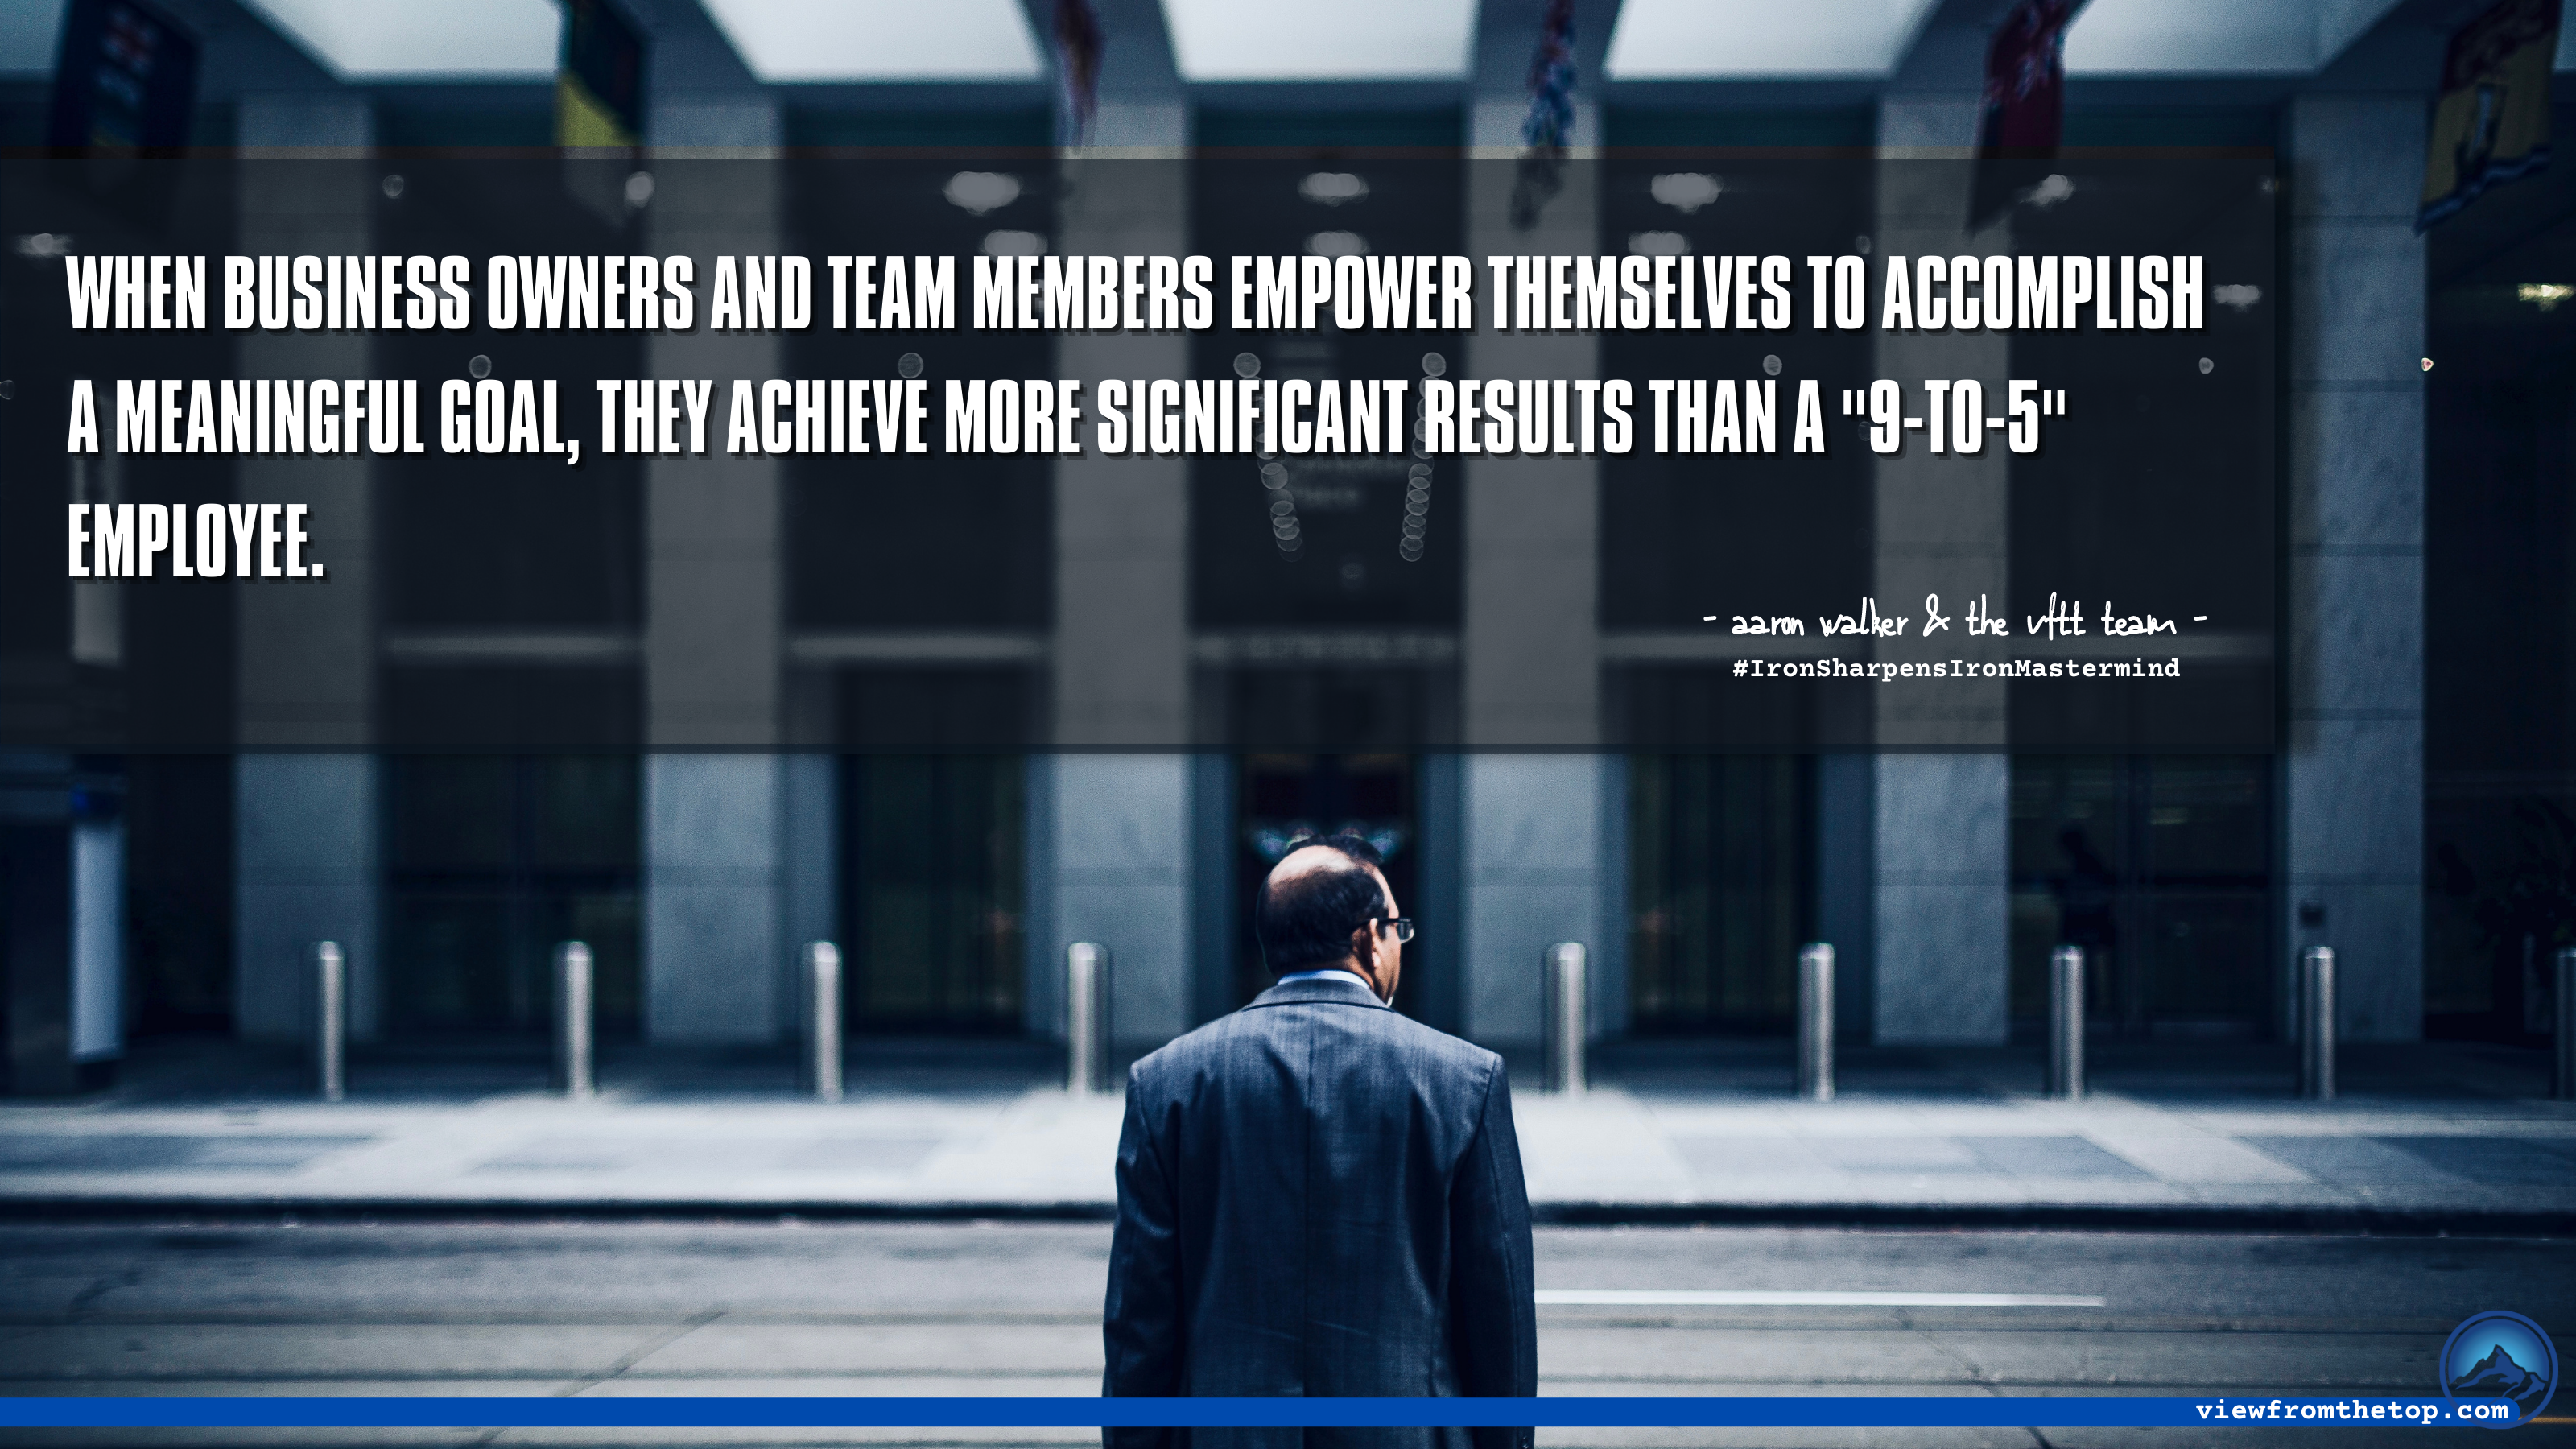 When business owners and team members empower themselves to accomplish a meaningful goal, they achieve more significant results than a 9-to-5 employee. (1)